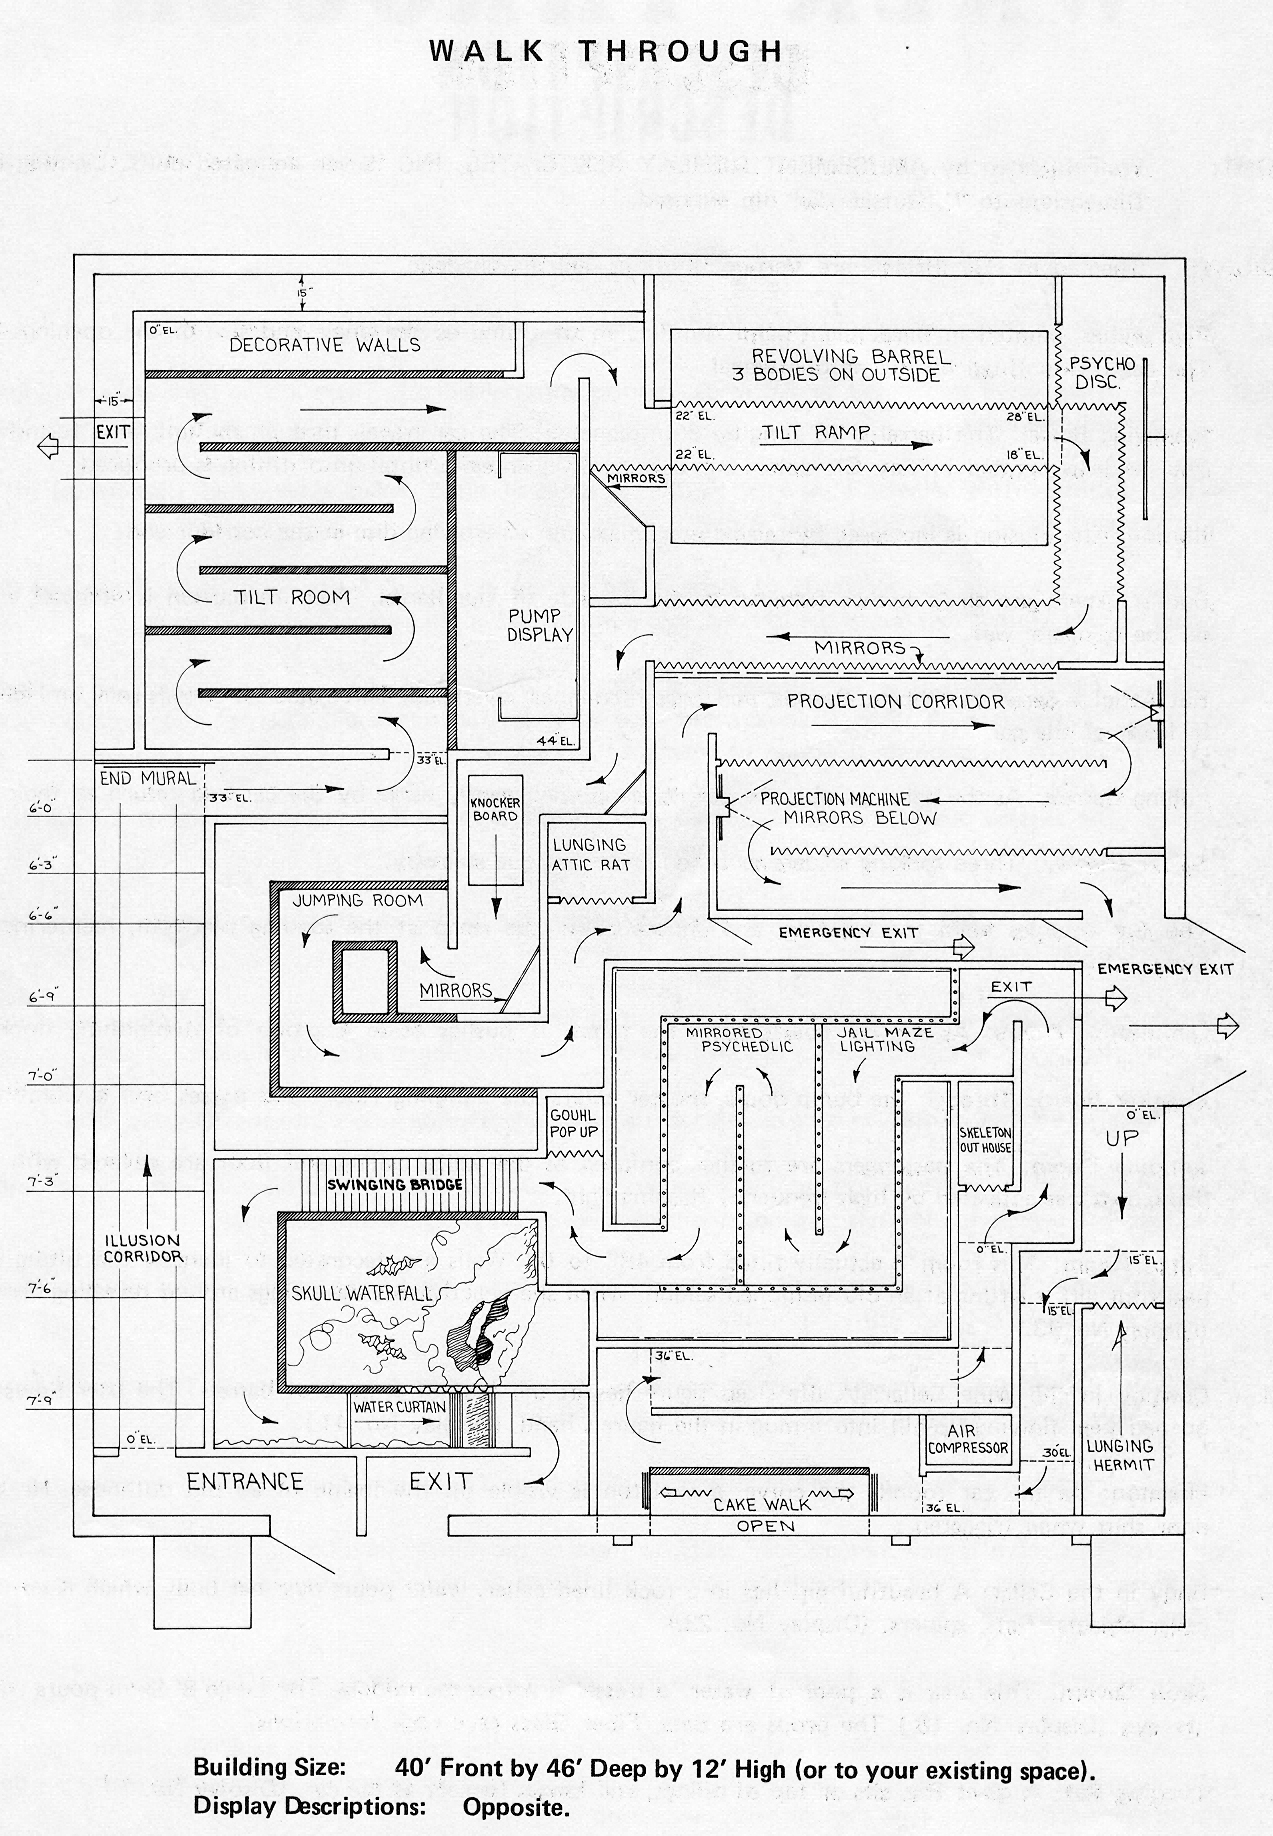 The Bill Tracy Project Ride Layouts